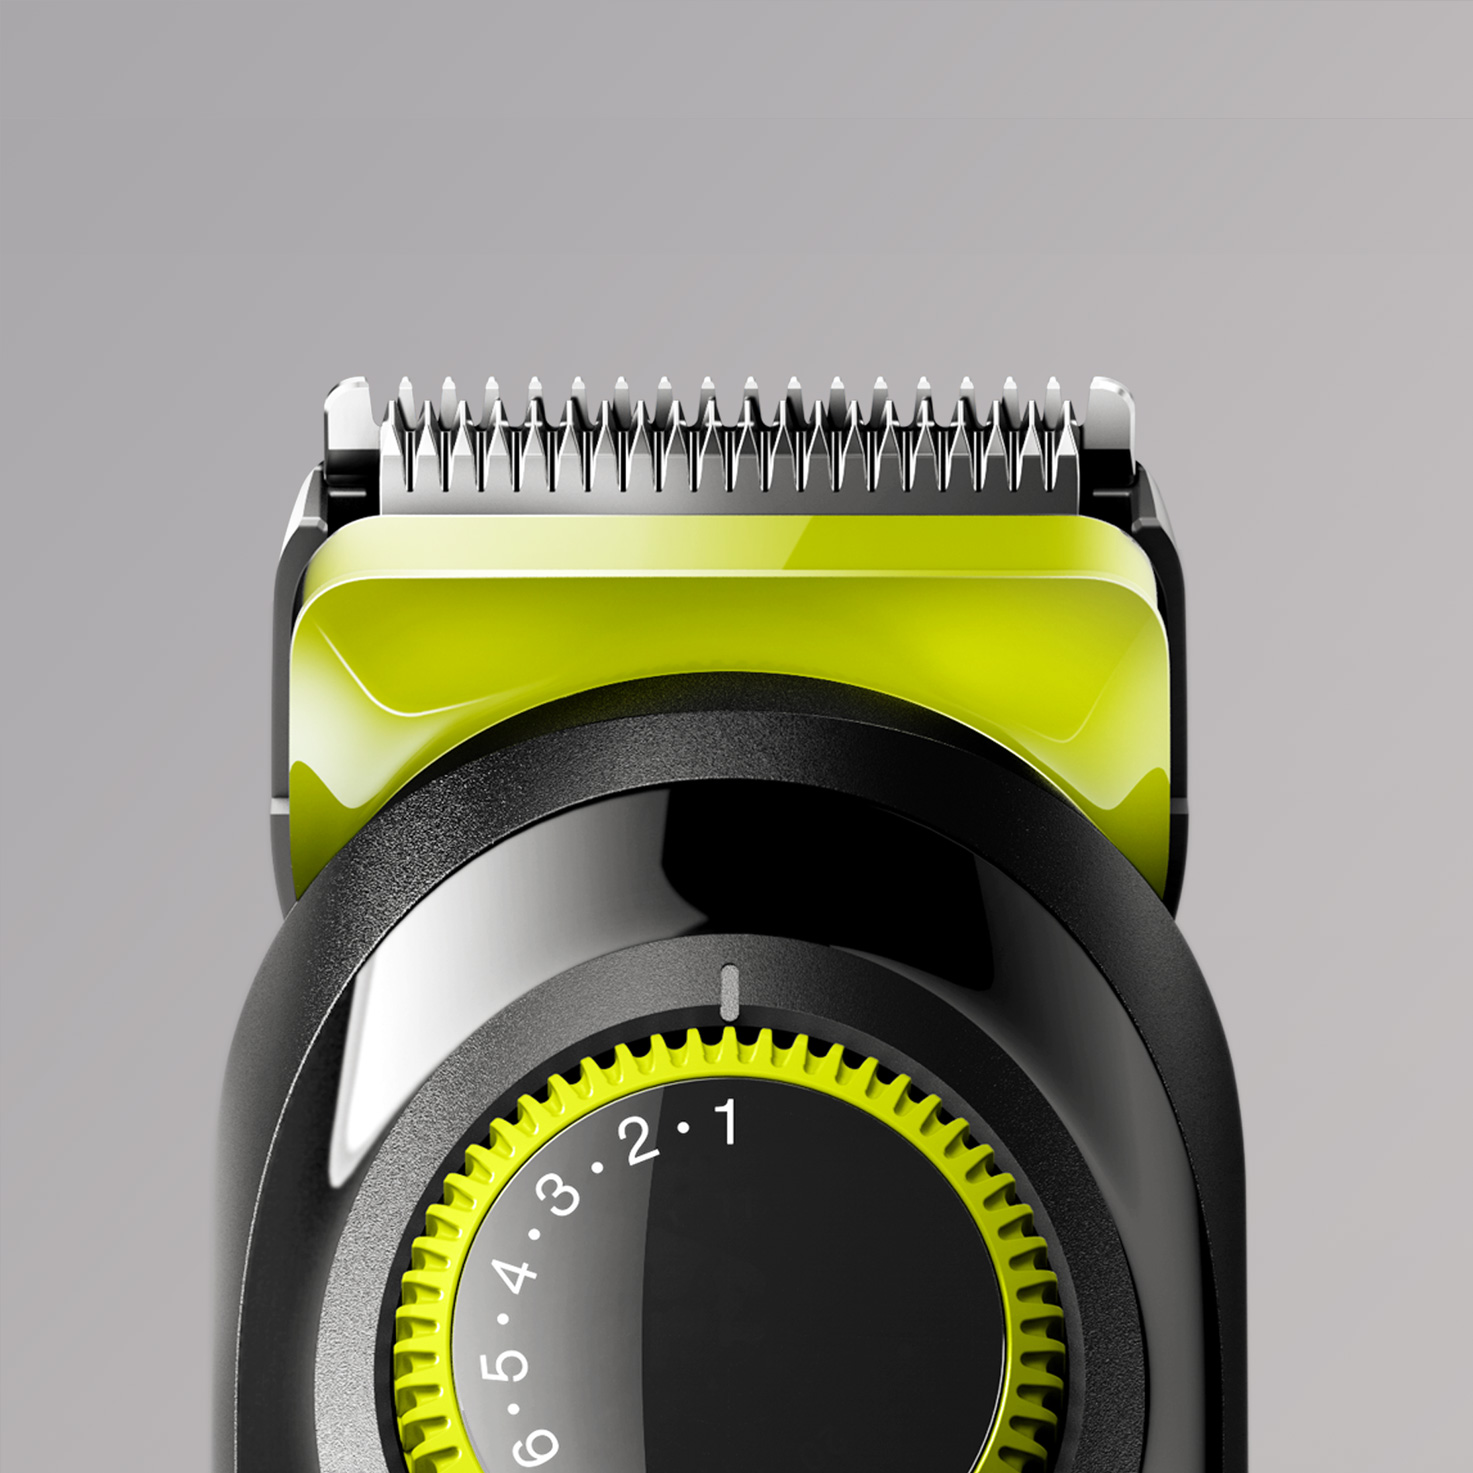 Braun BeardTrimmer BT3021 - Lifetime sharp blades